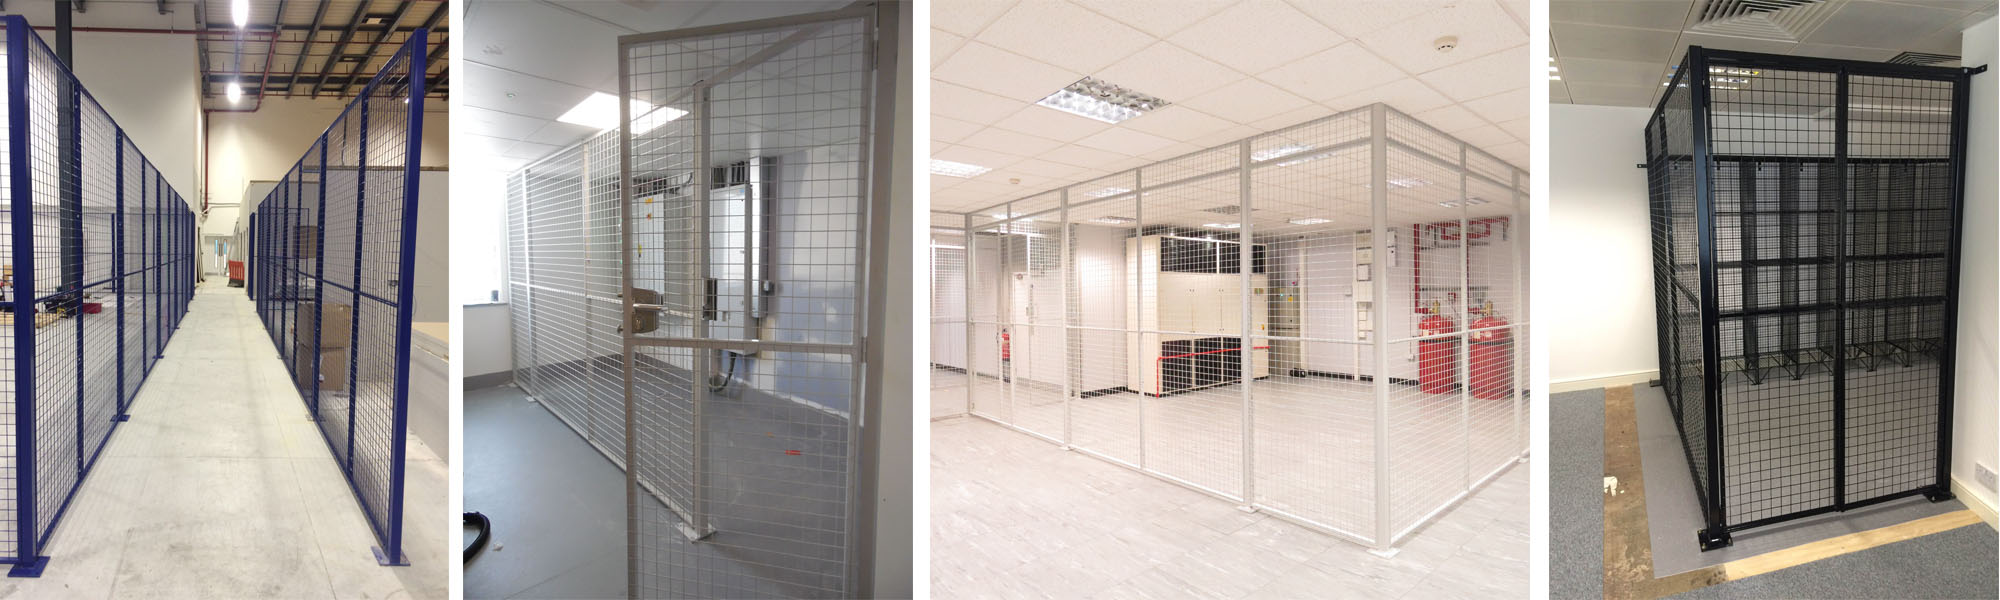 Wire Mesh Partitions - Ampwire